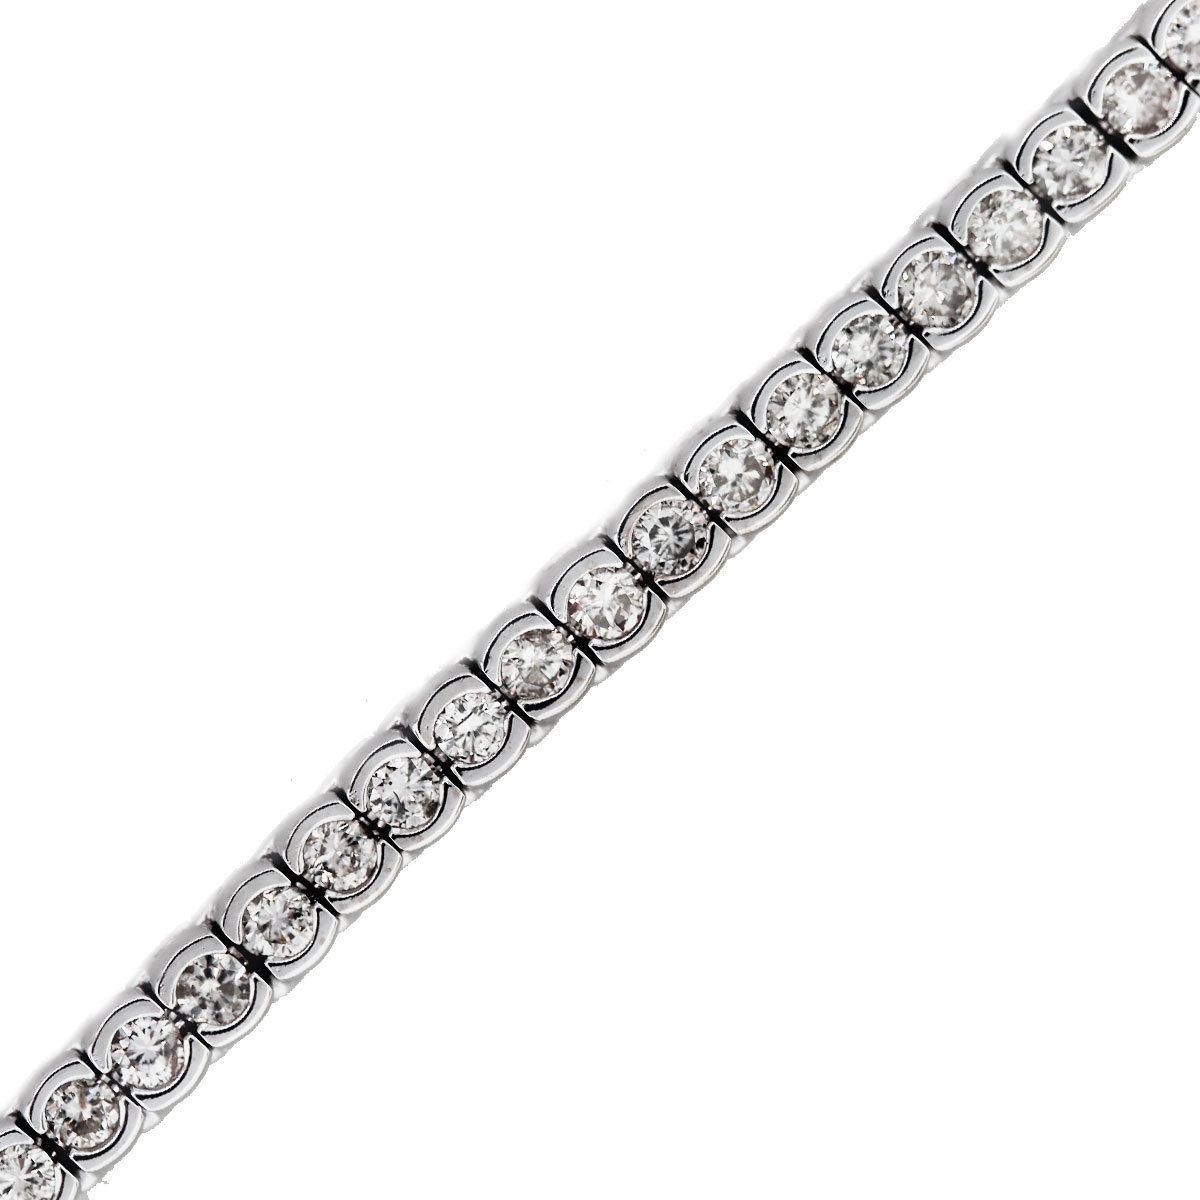 You are viewing this 14k White Gold 3ctw Half Bezel Set Diamond Tennis Bracelet!